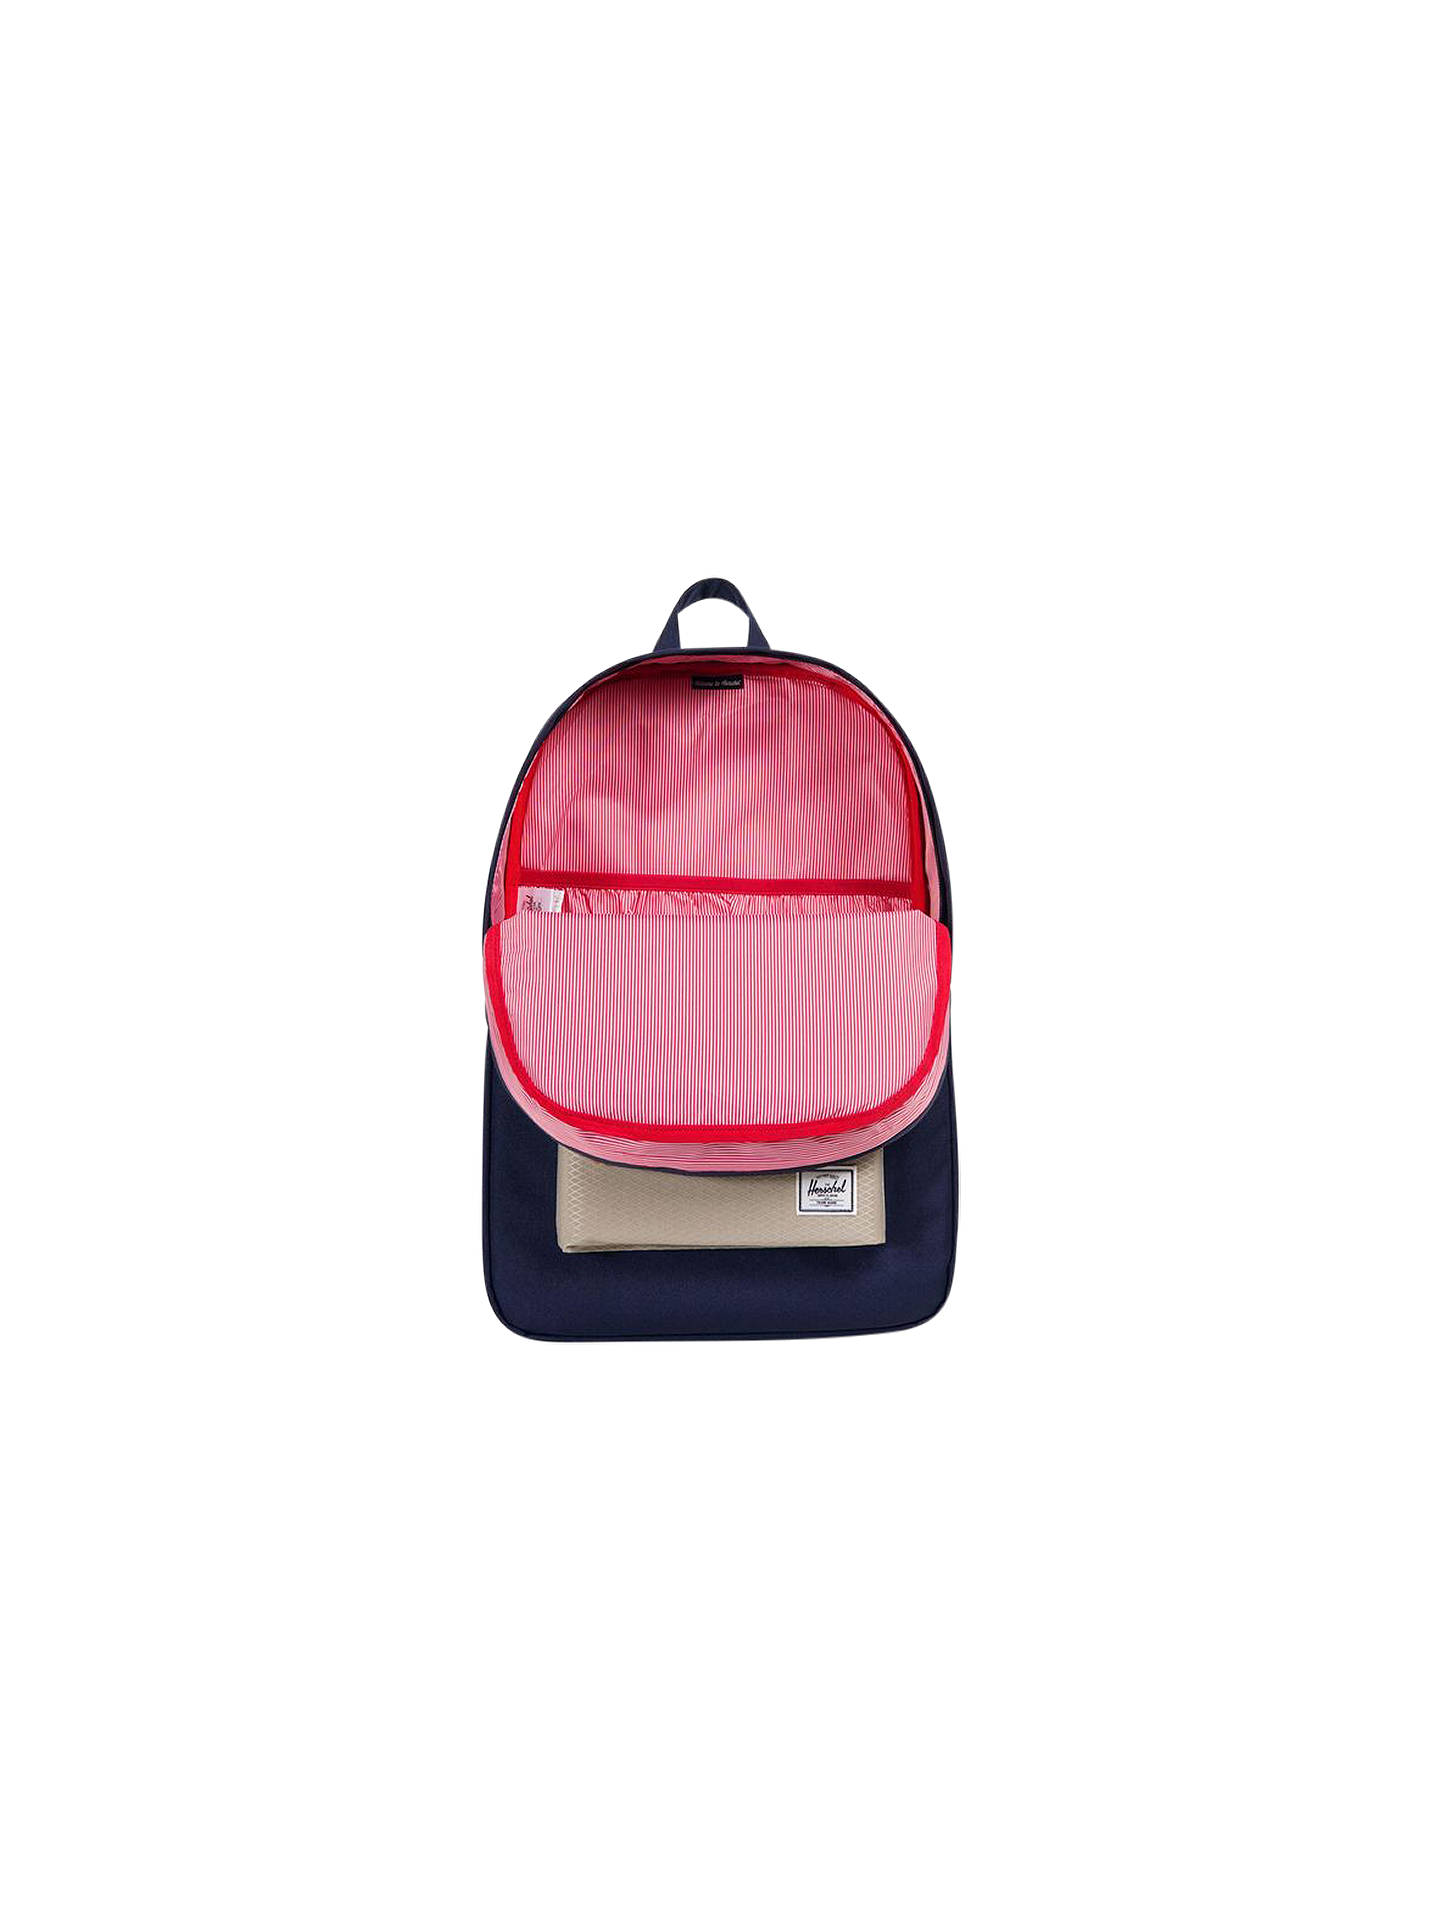 8f515b2425f Herschel Supply Co. Heritage Backpack at John Lewis   Partners